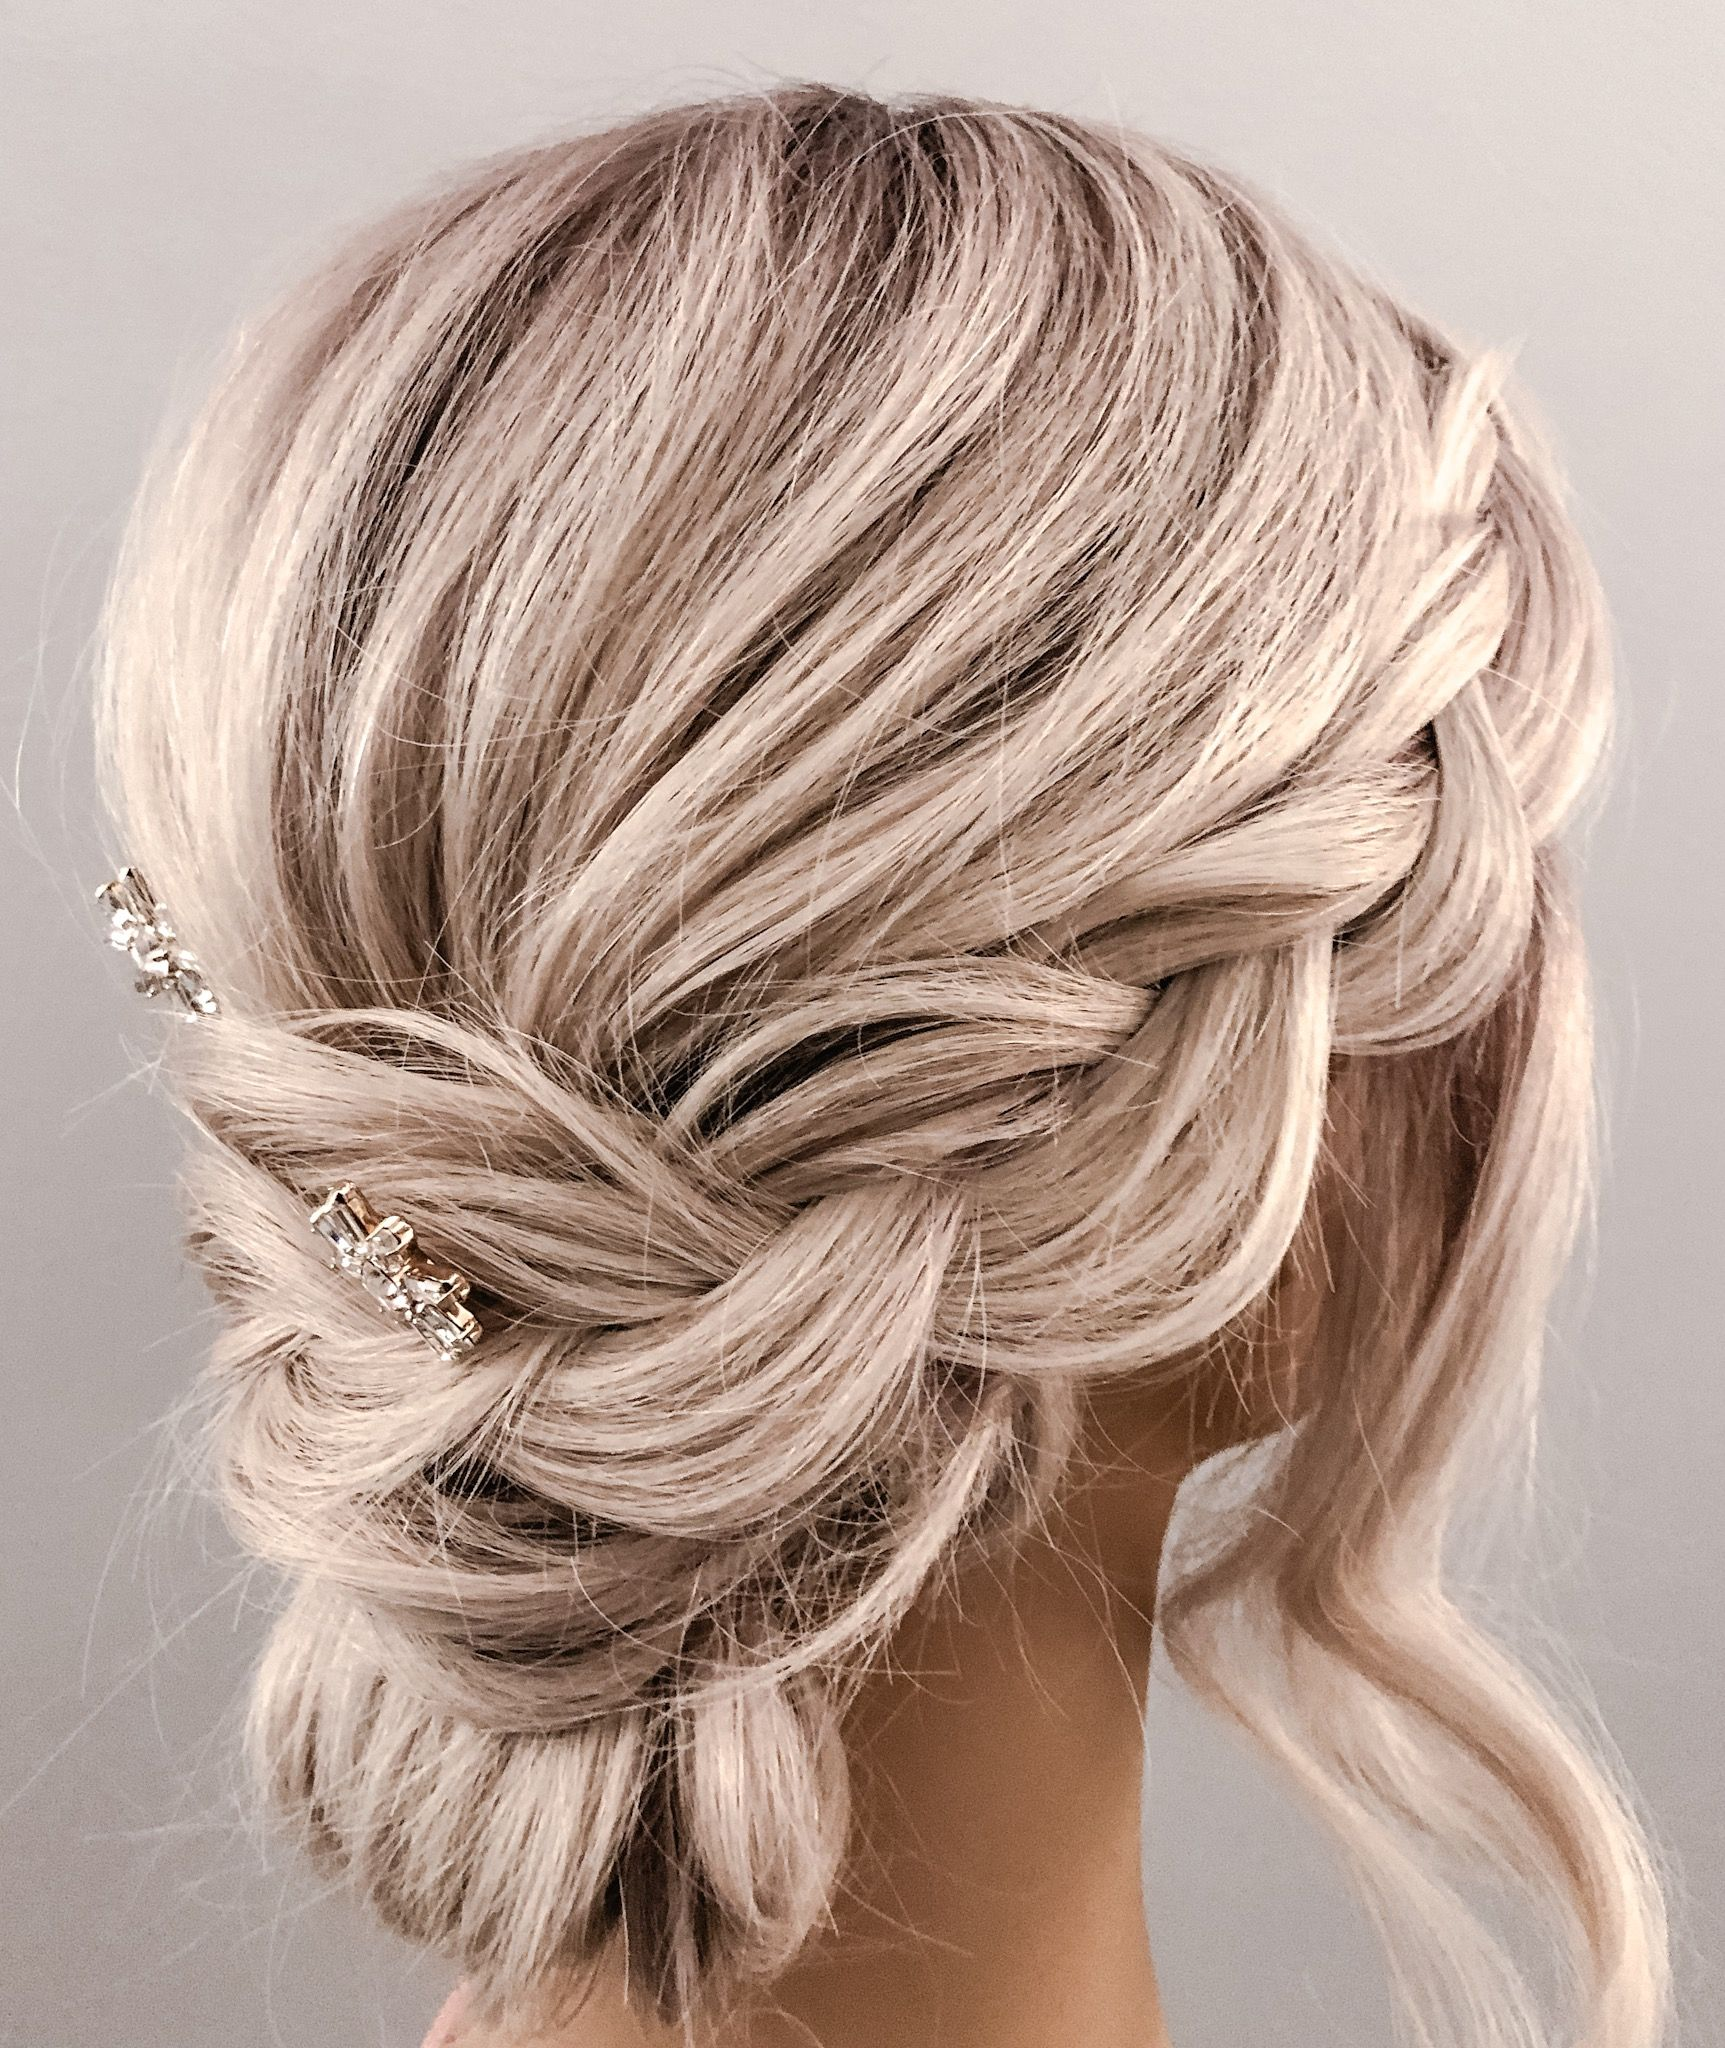 Loose Braided Updo On Platinum Blonde Hair Hairbysare